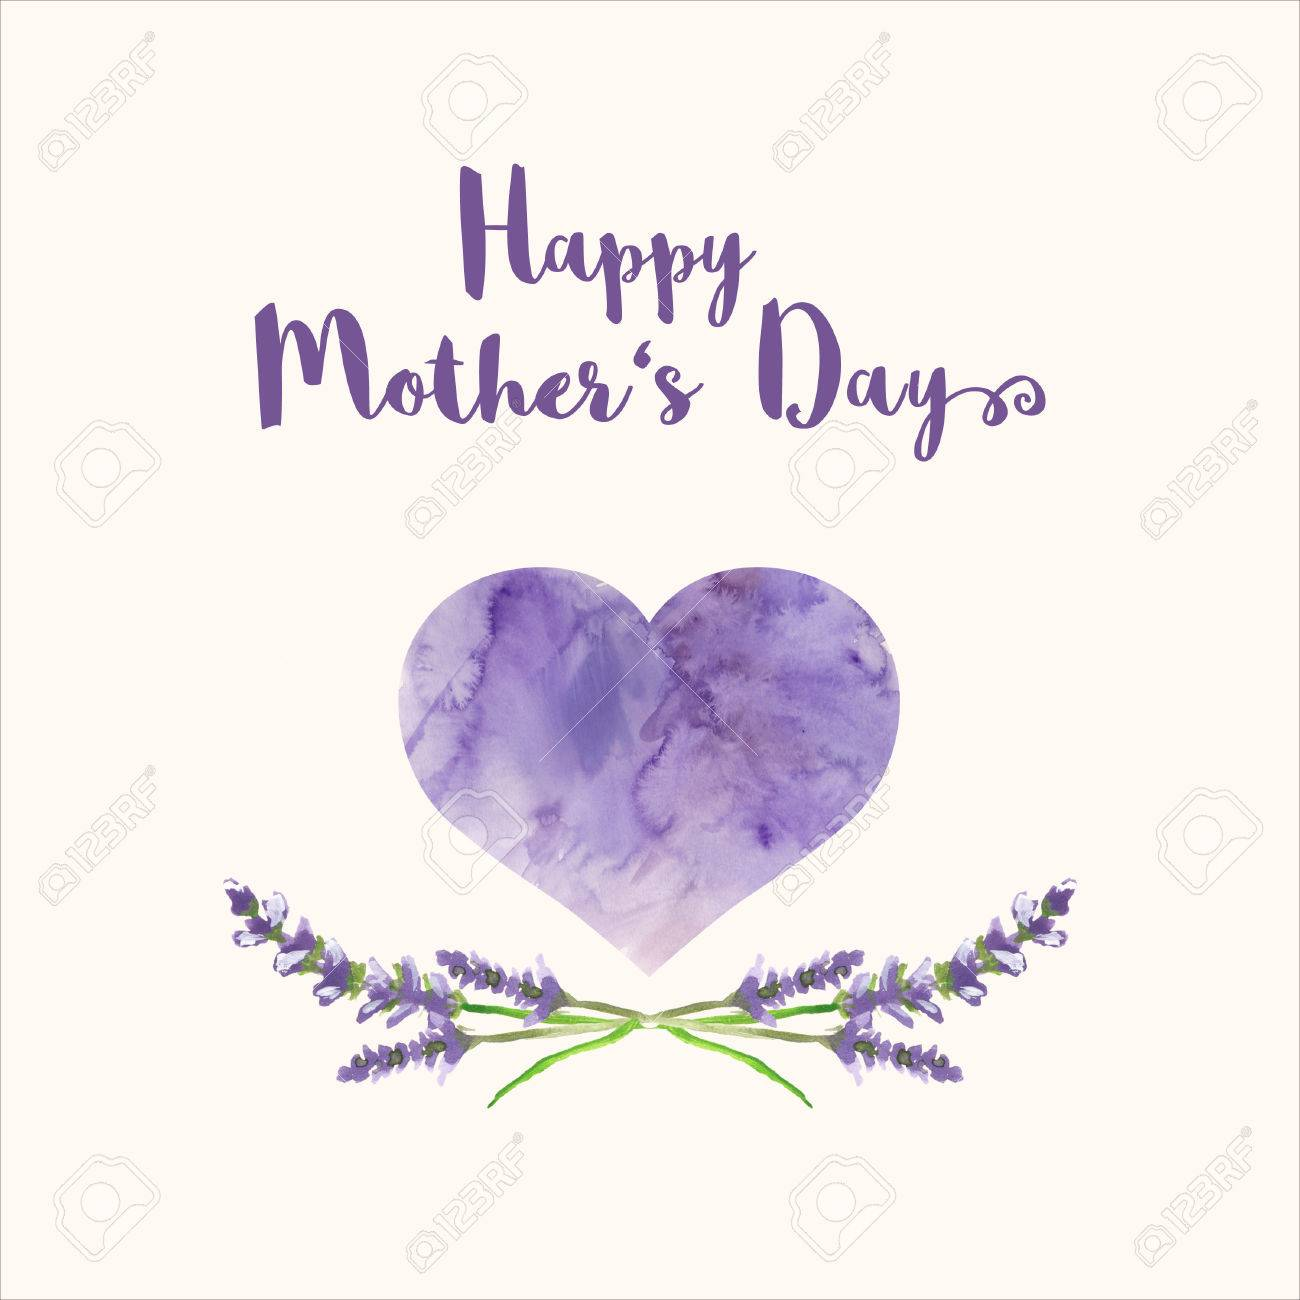 Greeting card with text happy mothers day heart with violet greeting card with text happy mothers day heart with violet watercolor texture and hand painted m4hsunfo